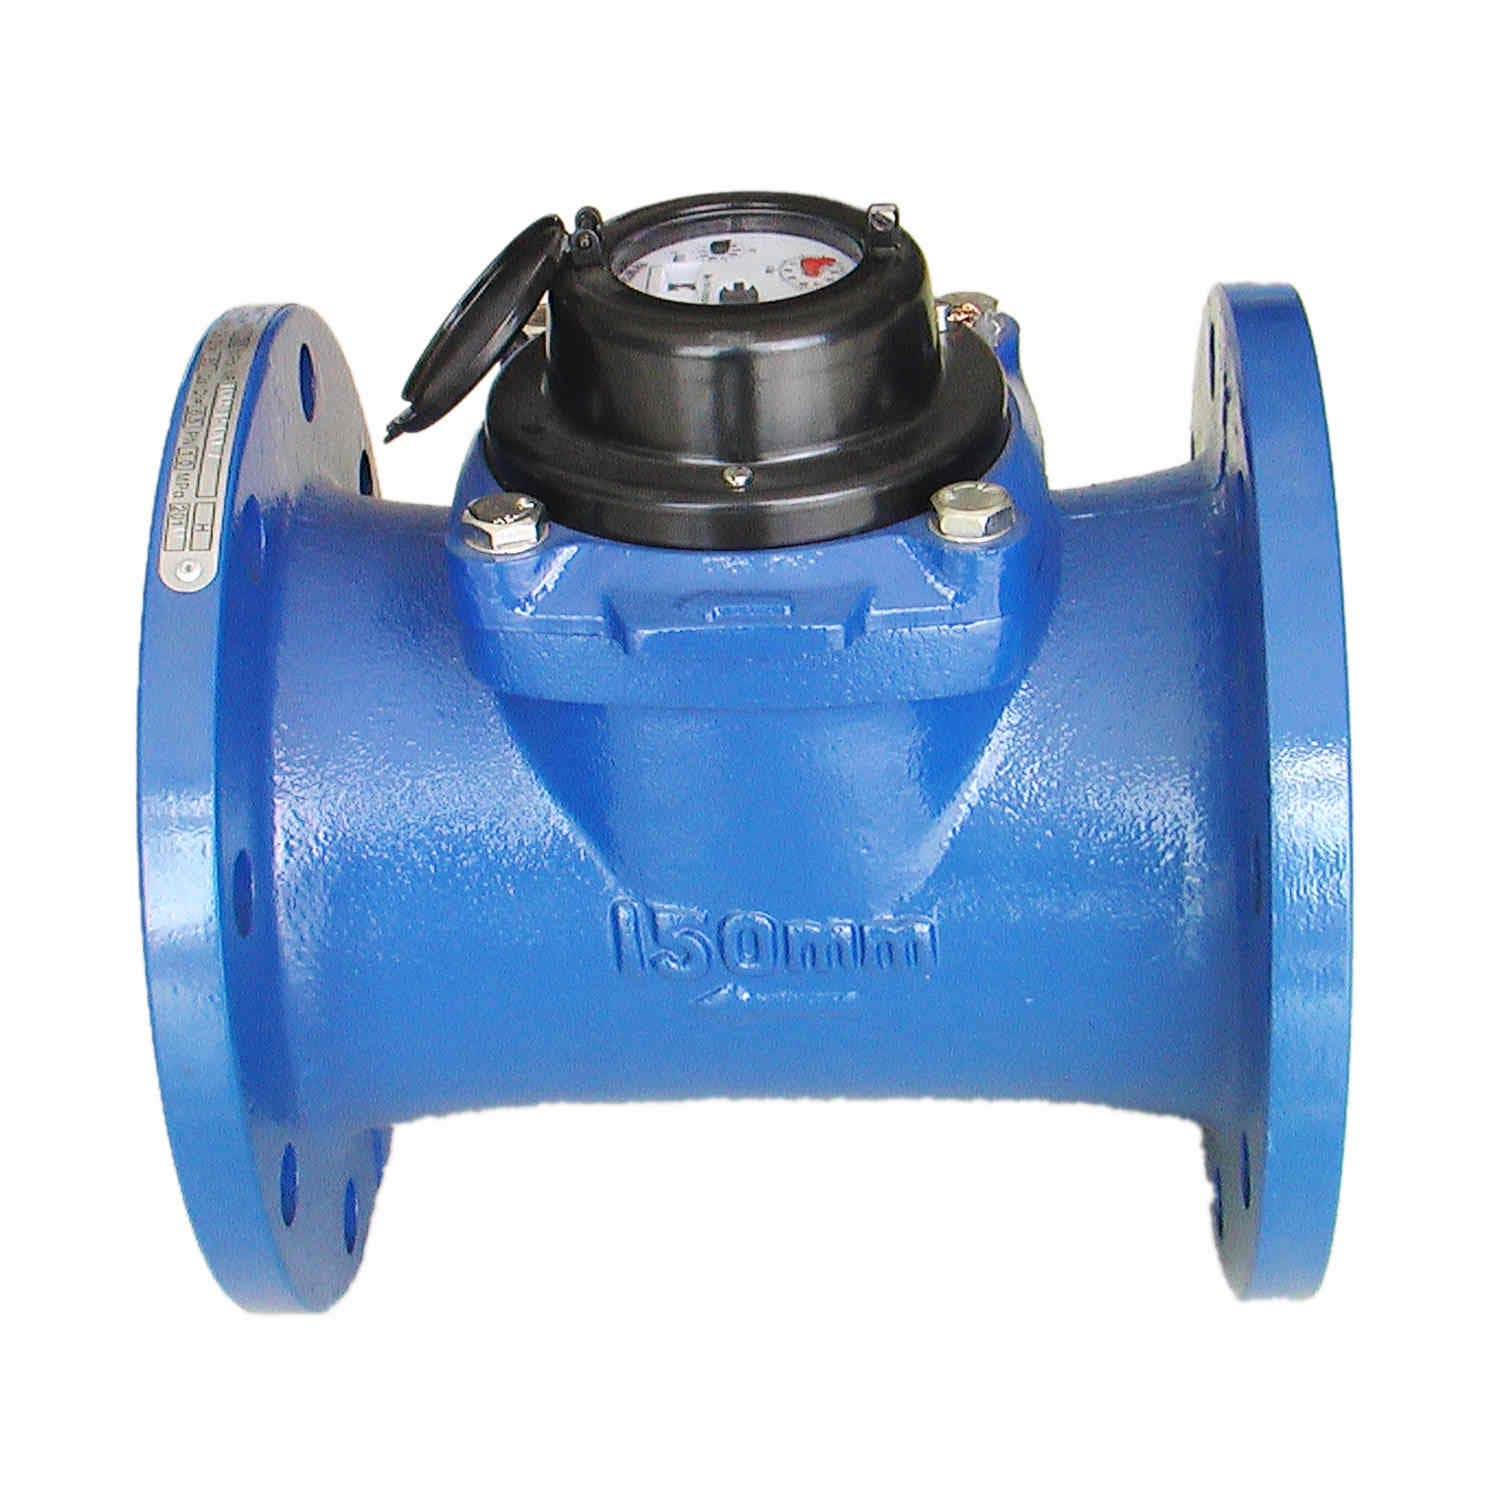 Water Flow Meter : Cast iron water meter from shandong guanxiang co